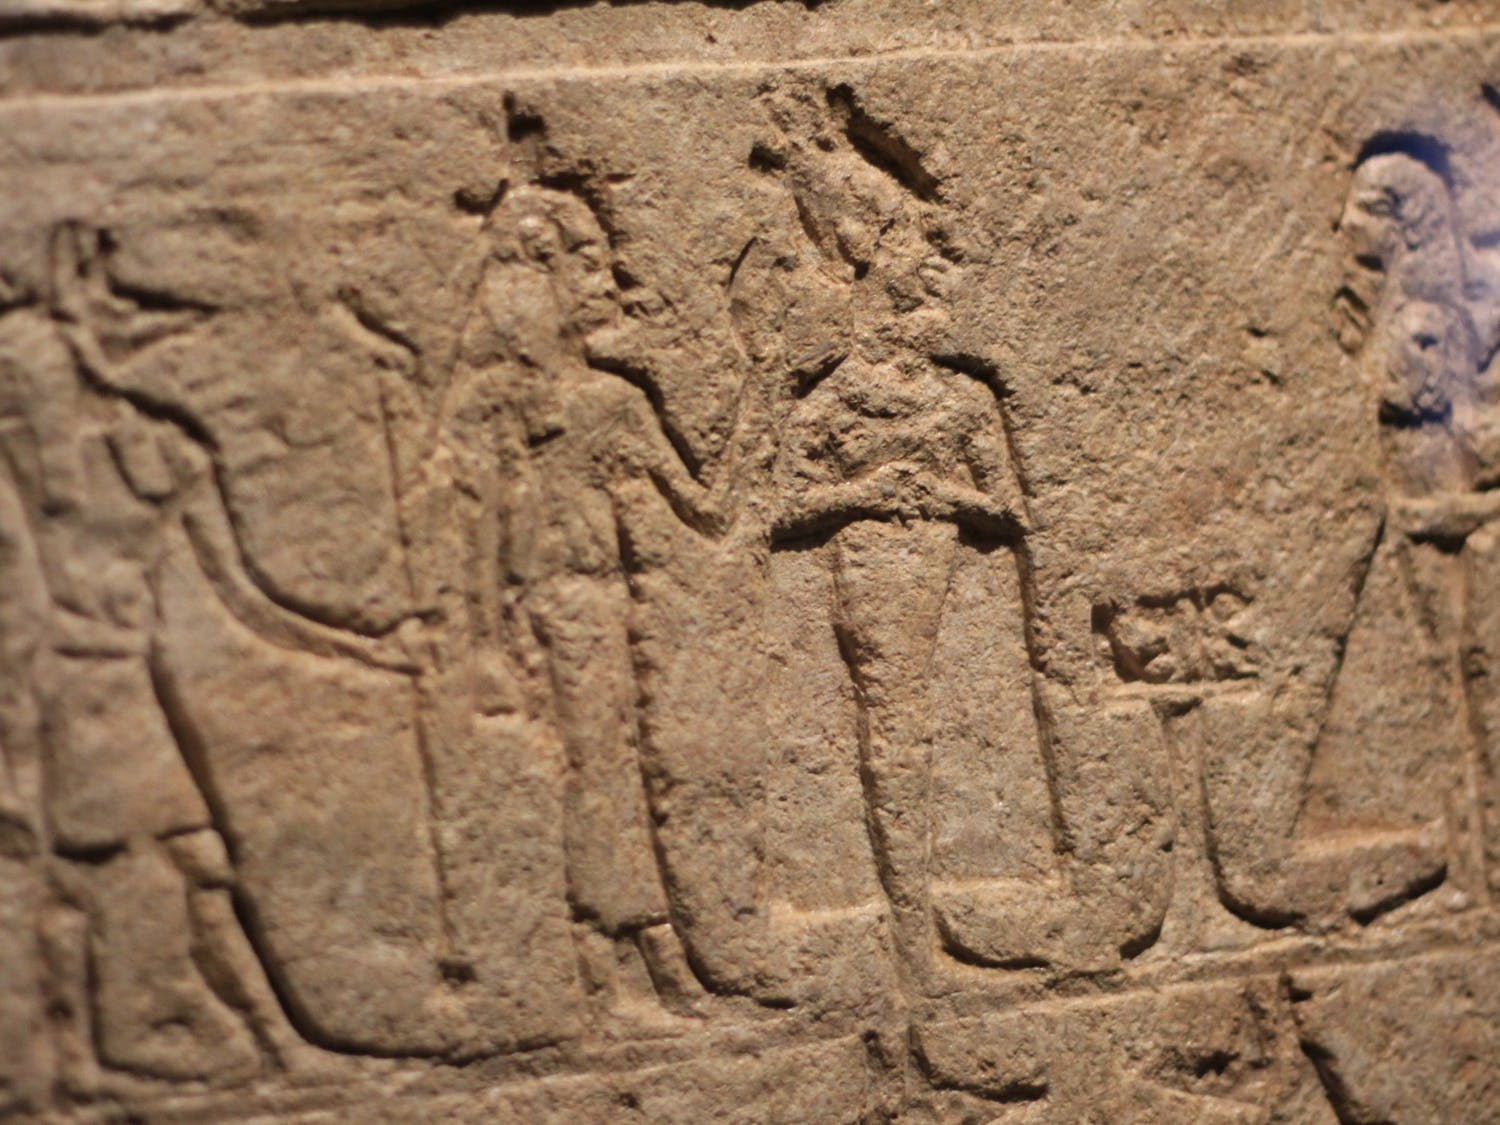 An example of the hieroglyphic carvings that often decorated the walls of Egyptian tombs.